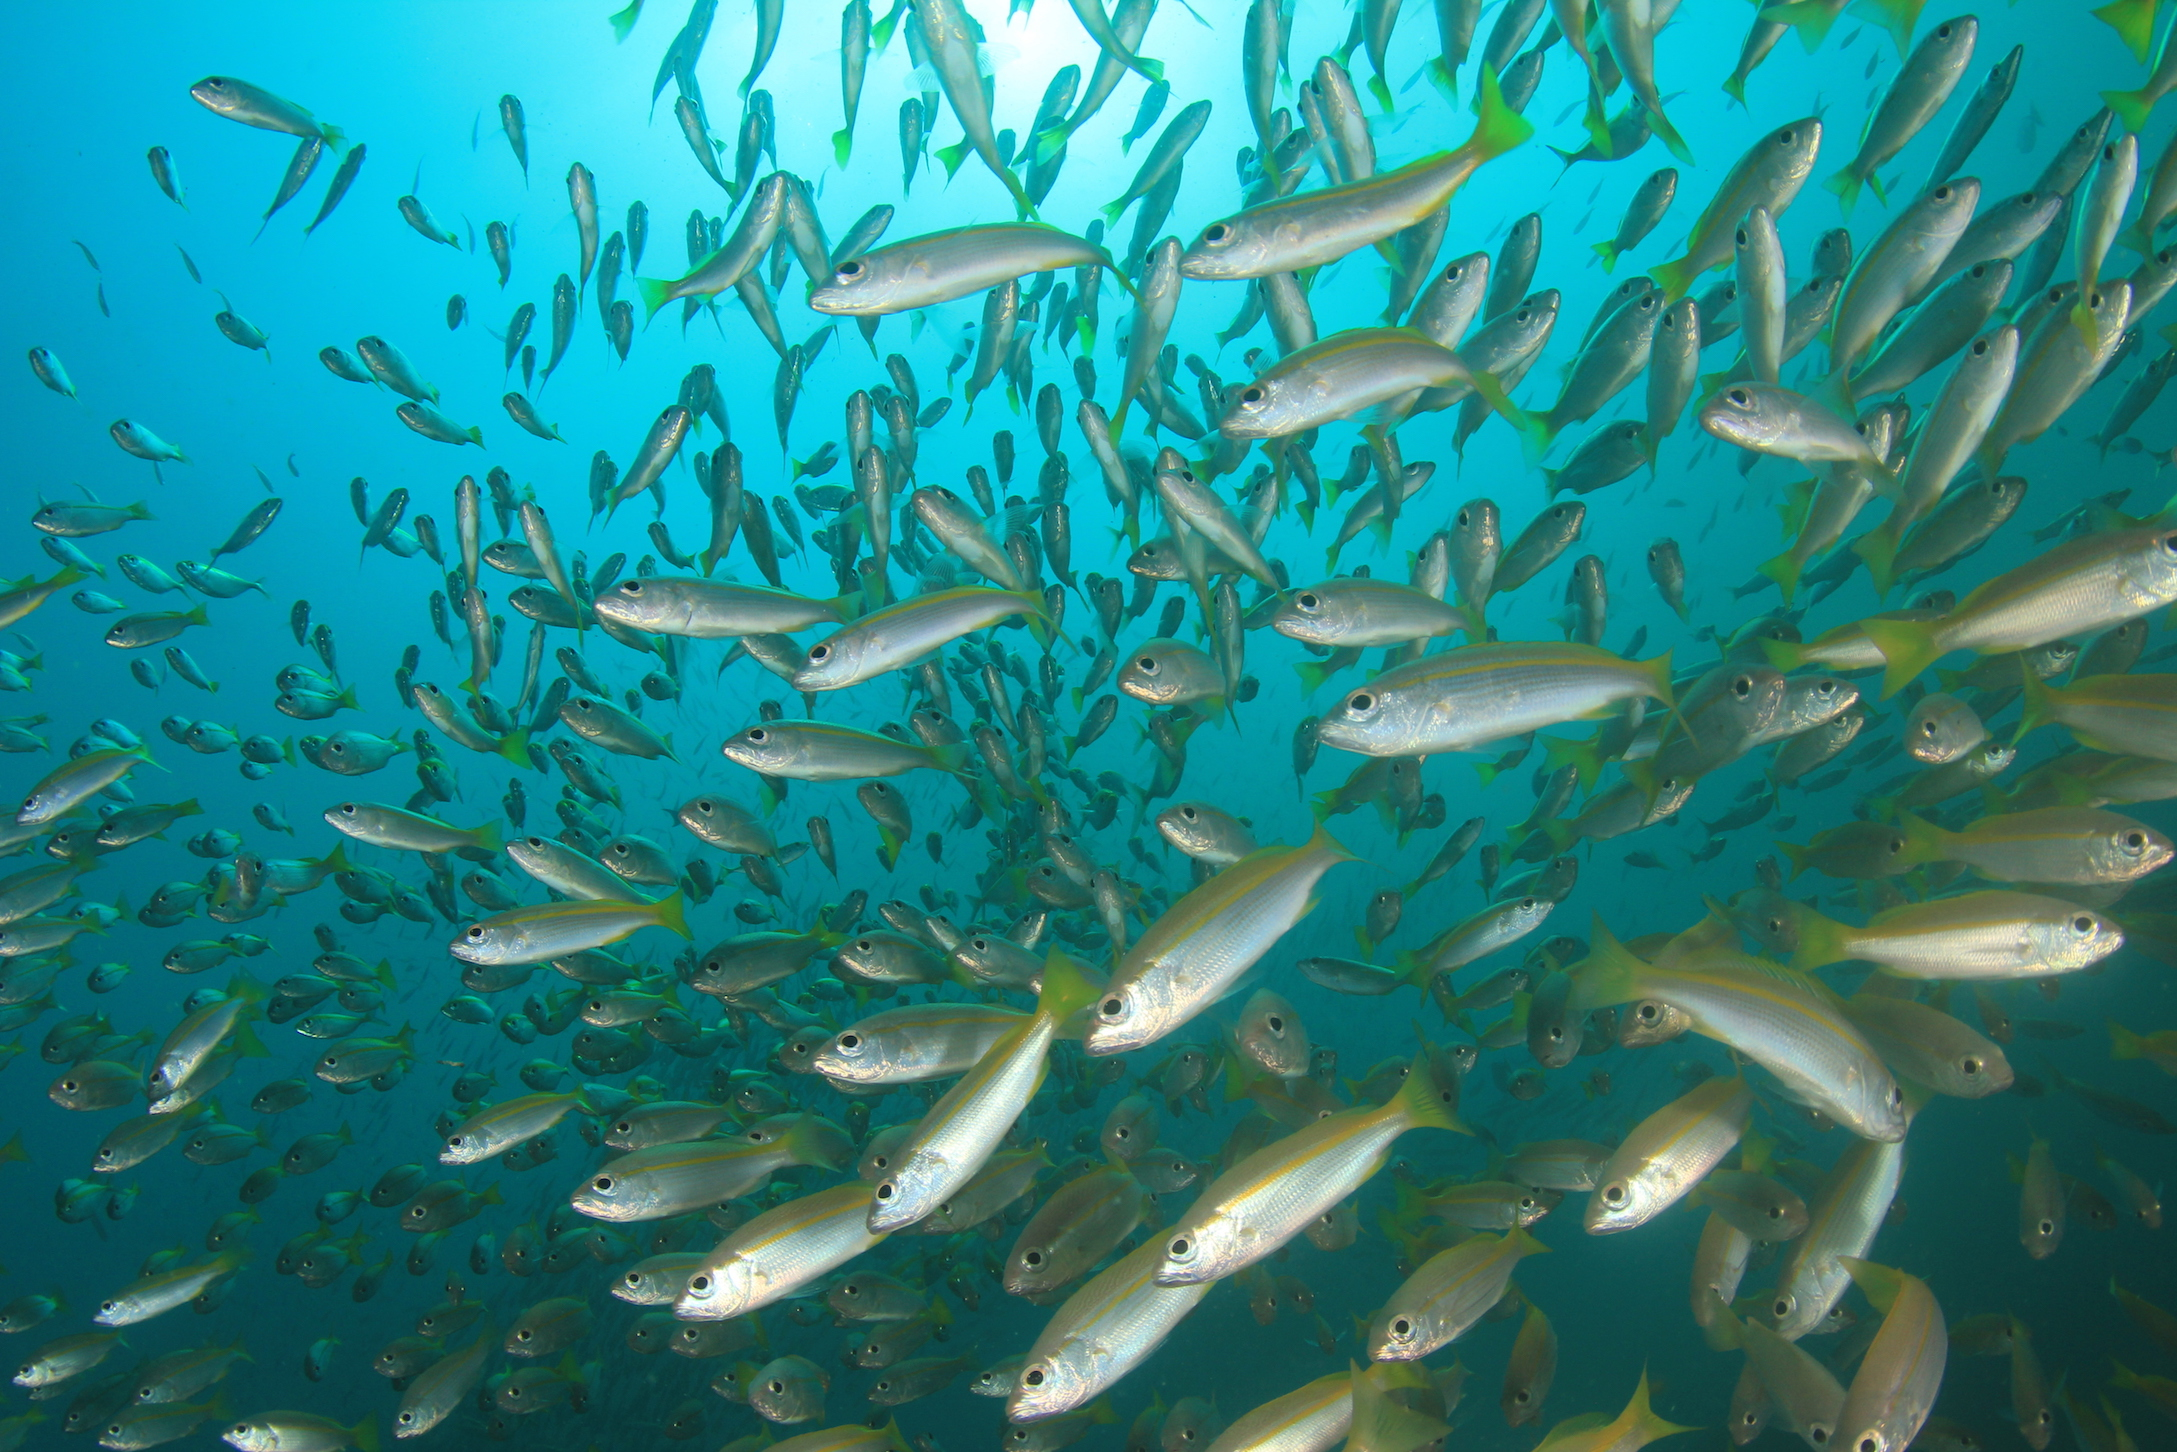 For the first time, scientists have recorded data for a fish migration simply by testing DNA samples in the water.